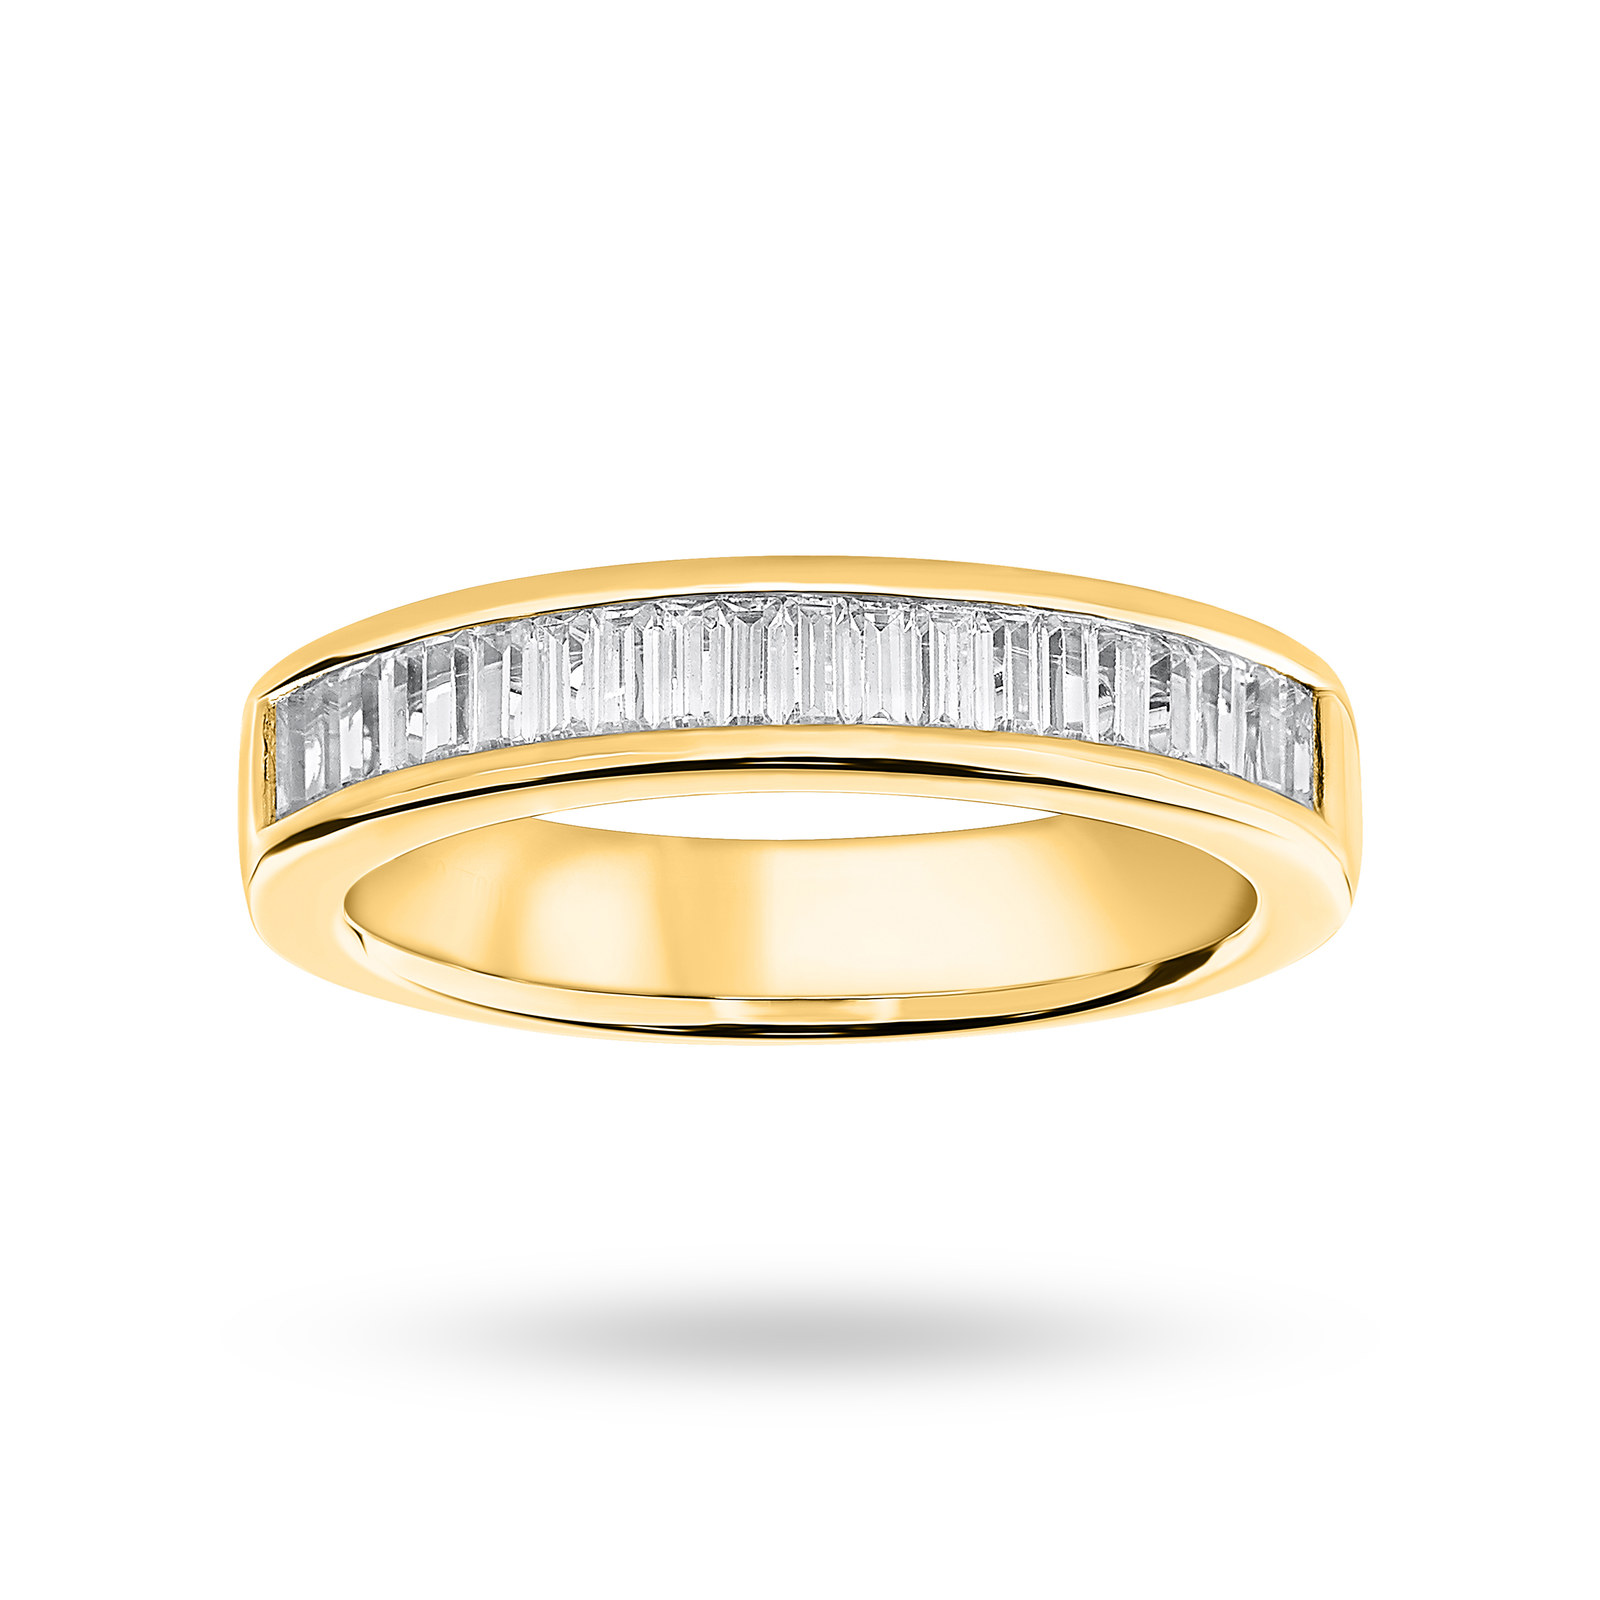 18 Carat Yellow Gold 0.75 Carat Baguette Cut Half Eternity Ring